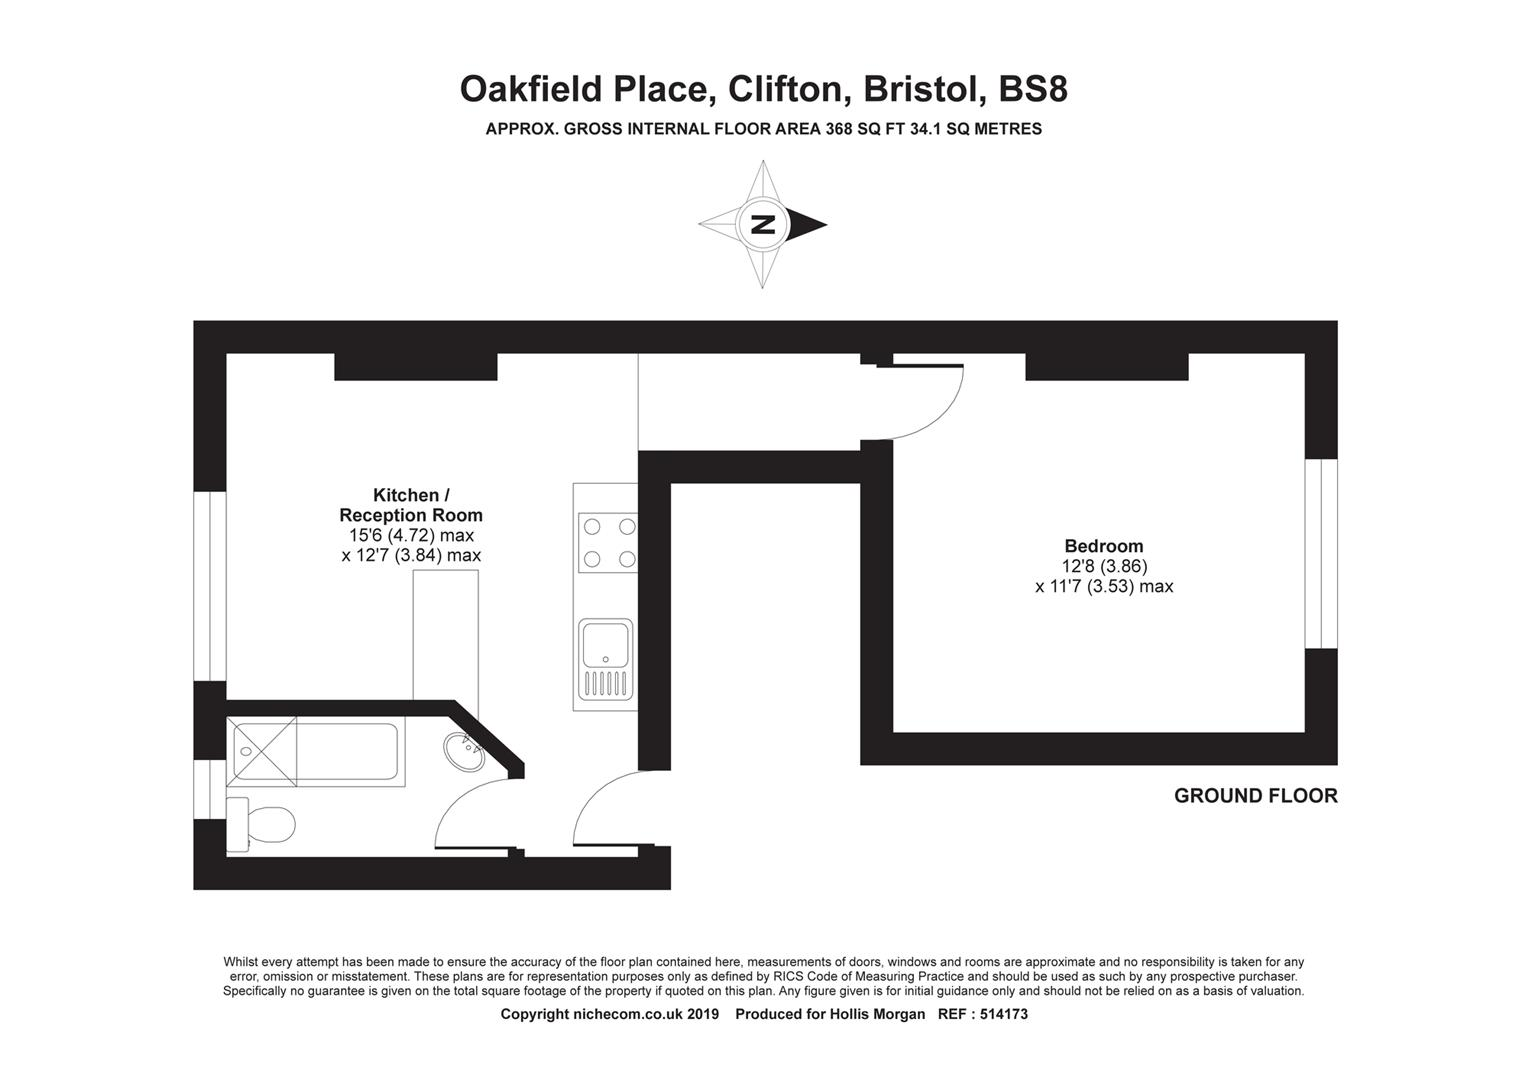 Floorplans For Oakfield Place, Clifton